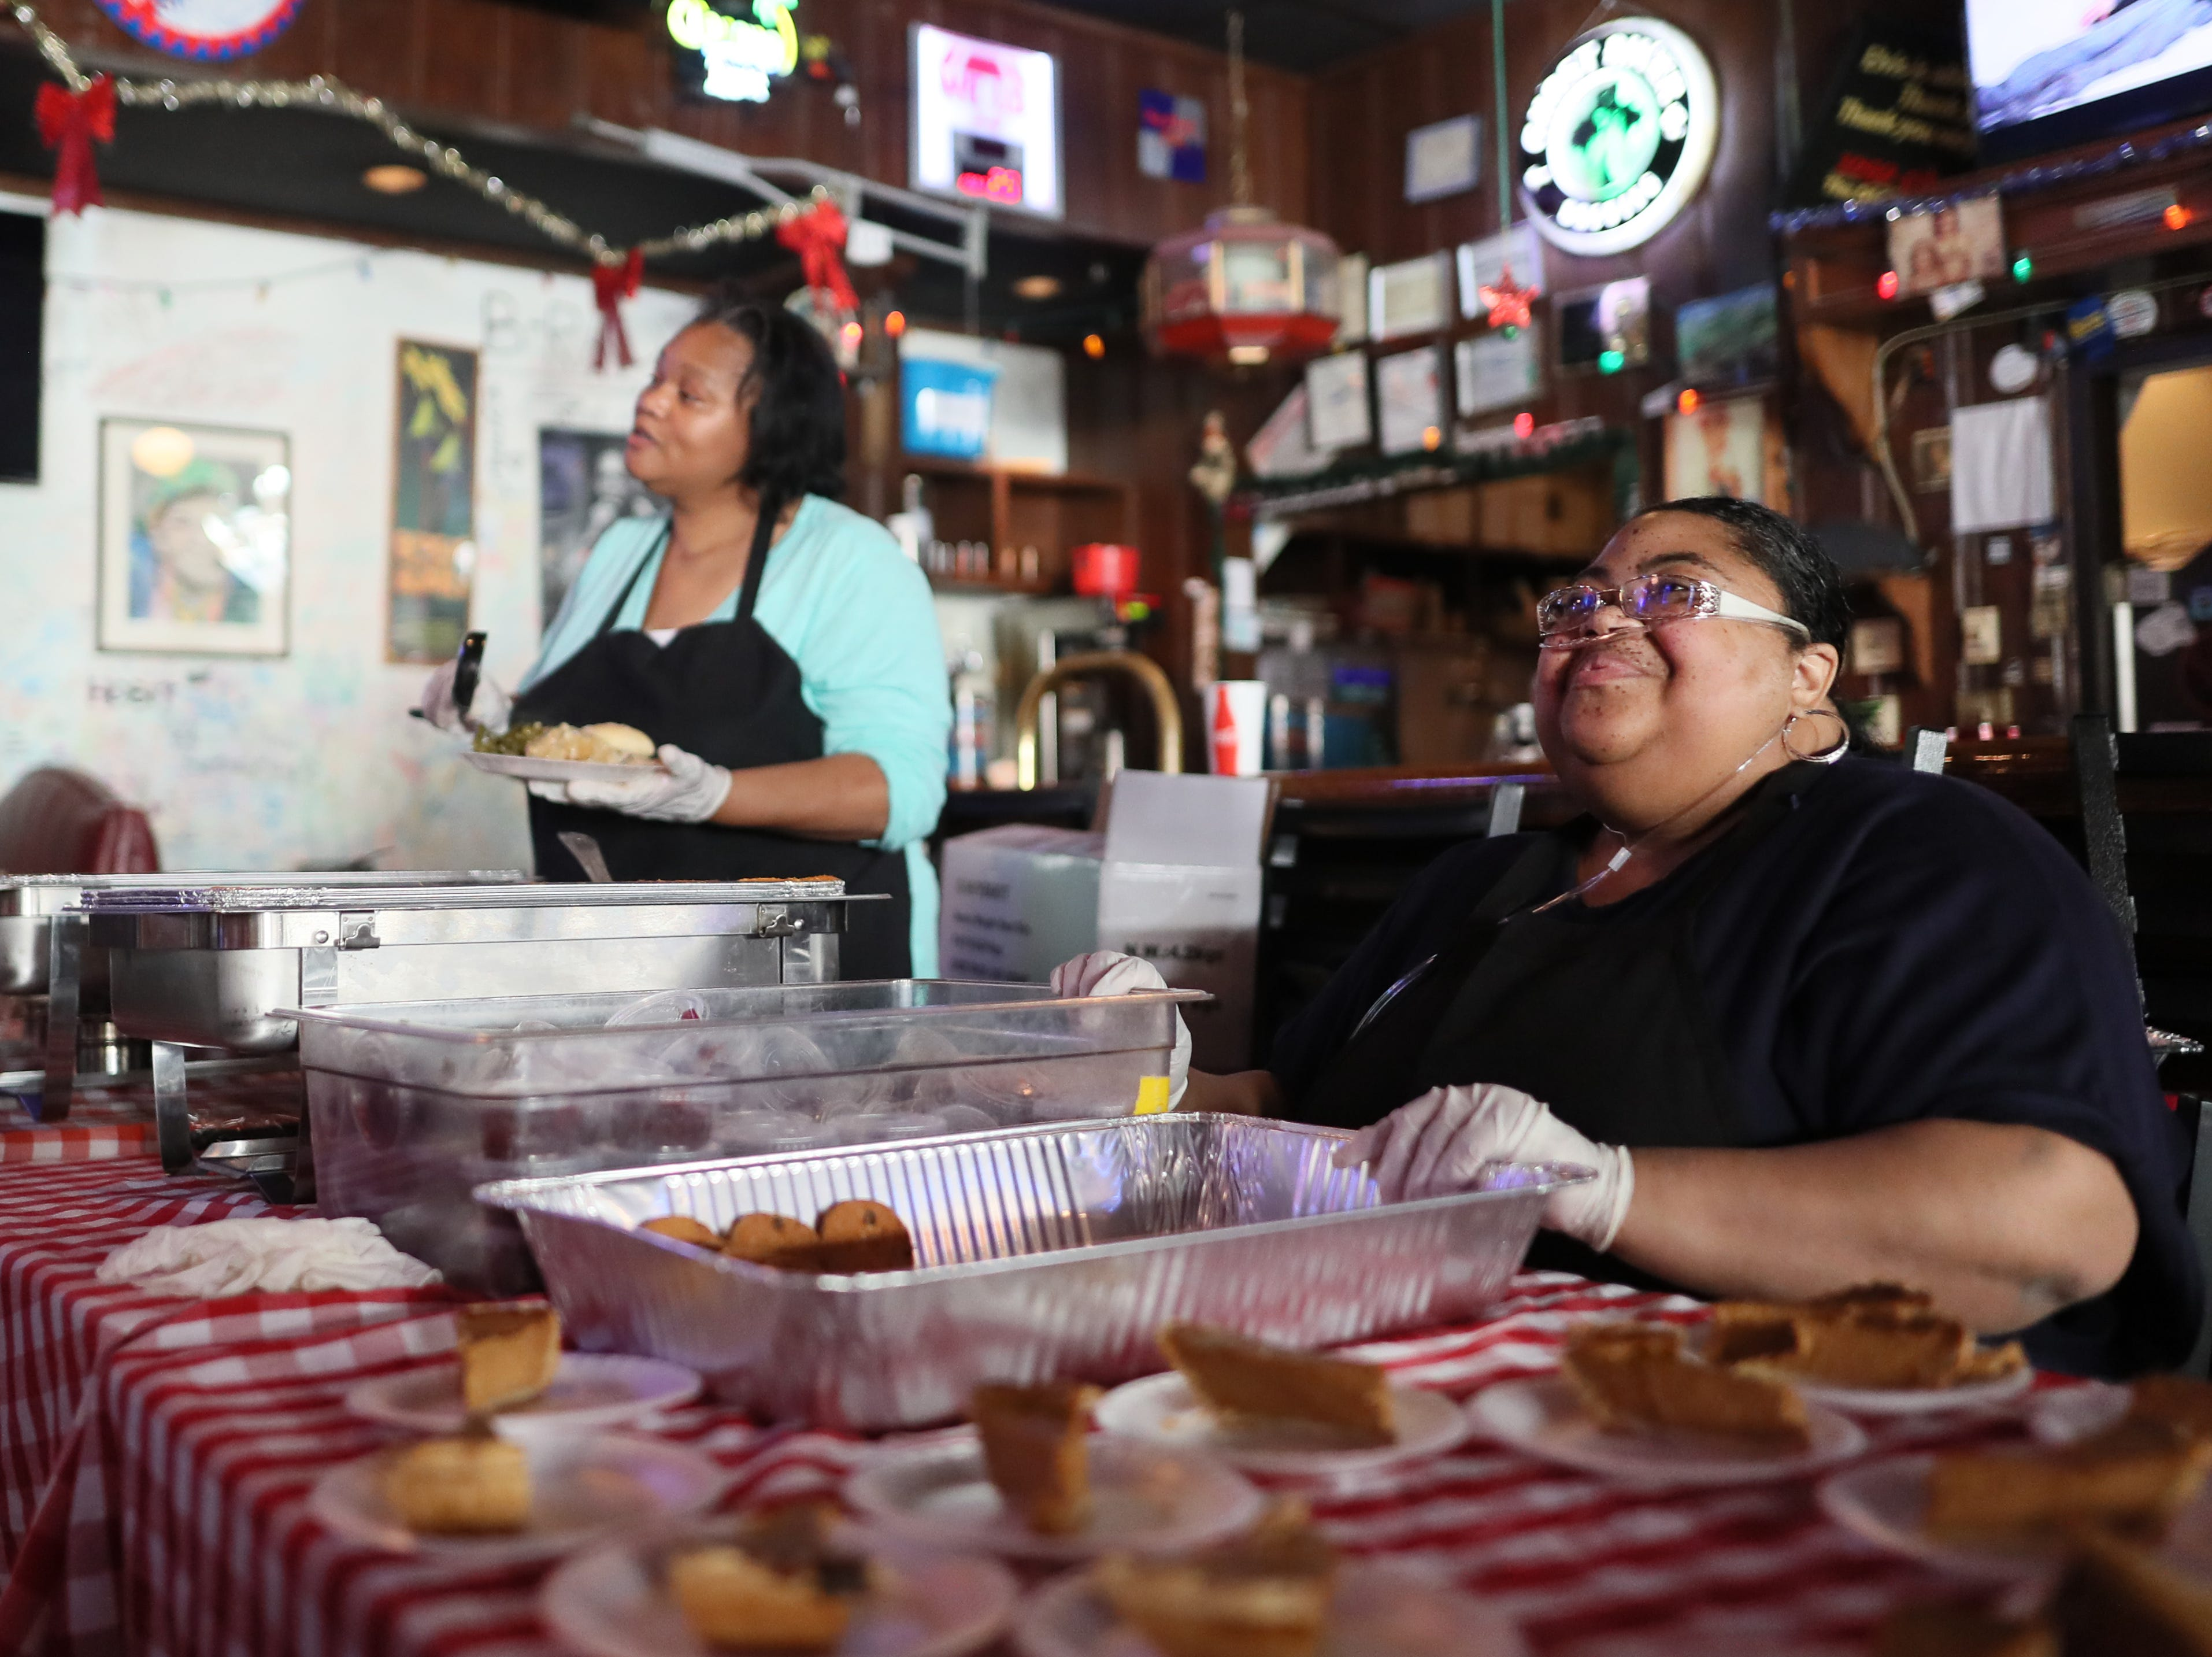 Patrice Thompson, left, and her cousin Shericka Cotton serve free meals and hand out warm clothing at the Huey's Downtown restaurant on Christmas Day Tuesday, Dec. 25, 2018.